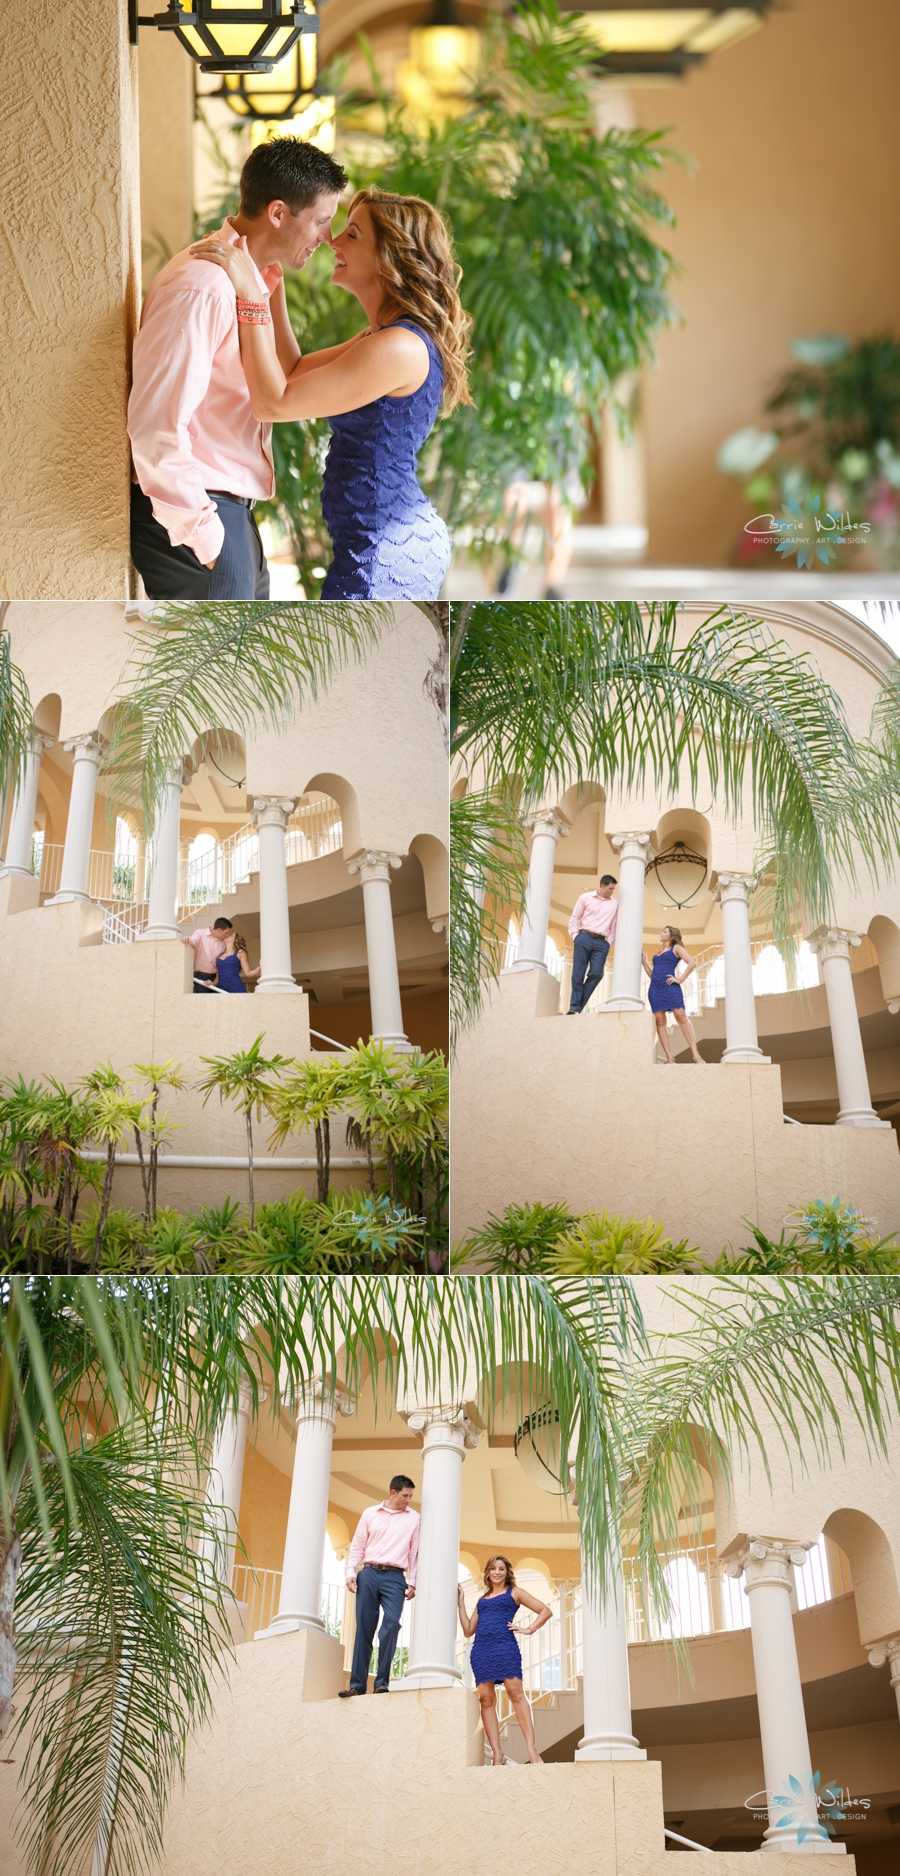 7_28_13 Ritz Carlton Orlando Engagement Session_0002.jpg